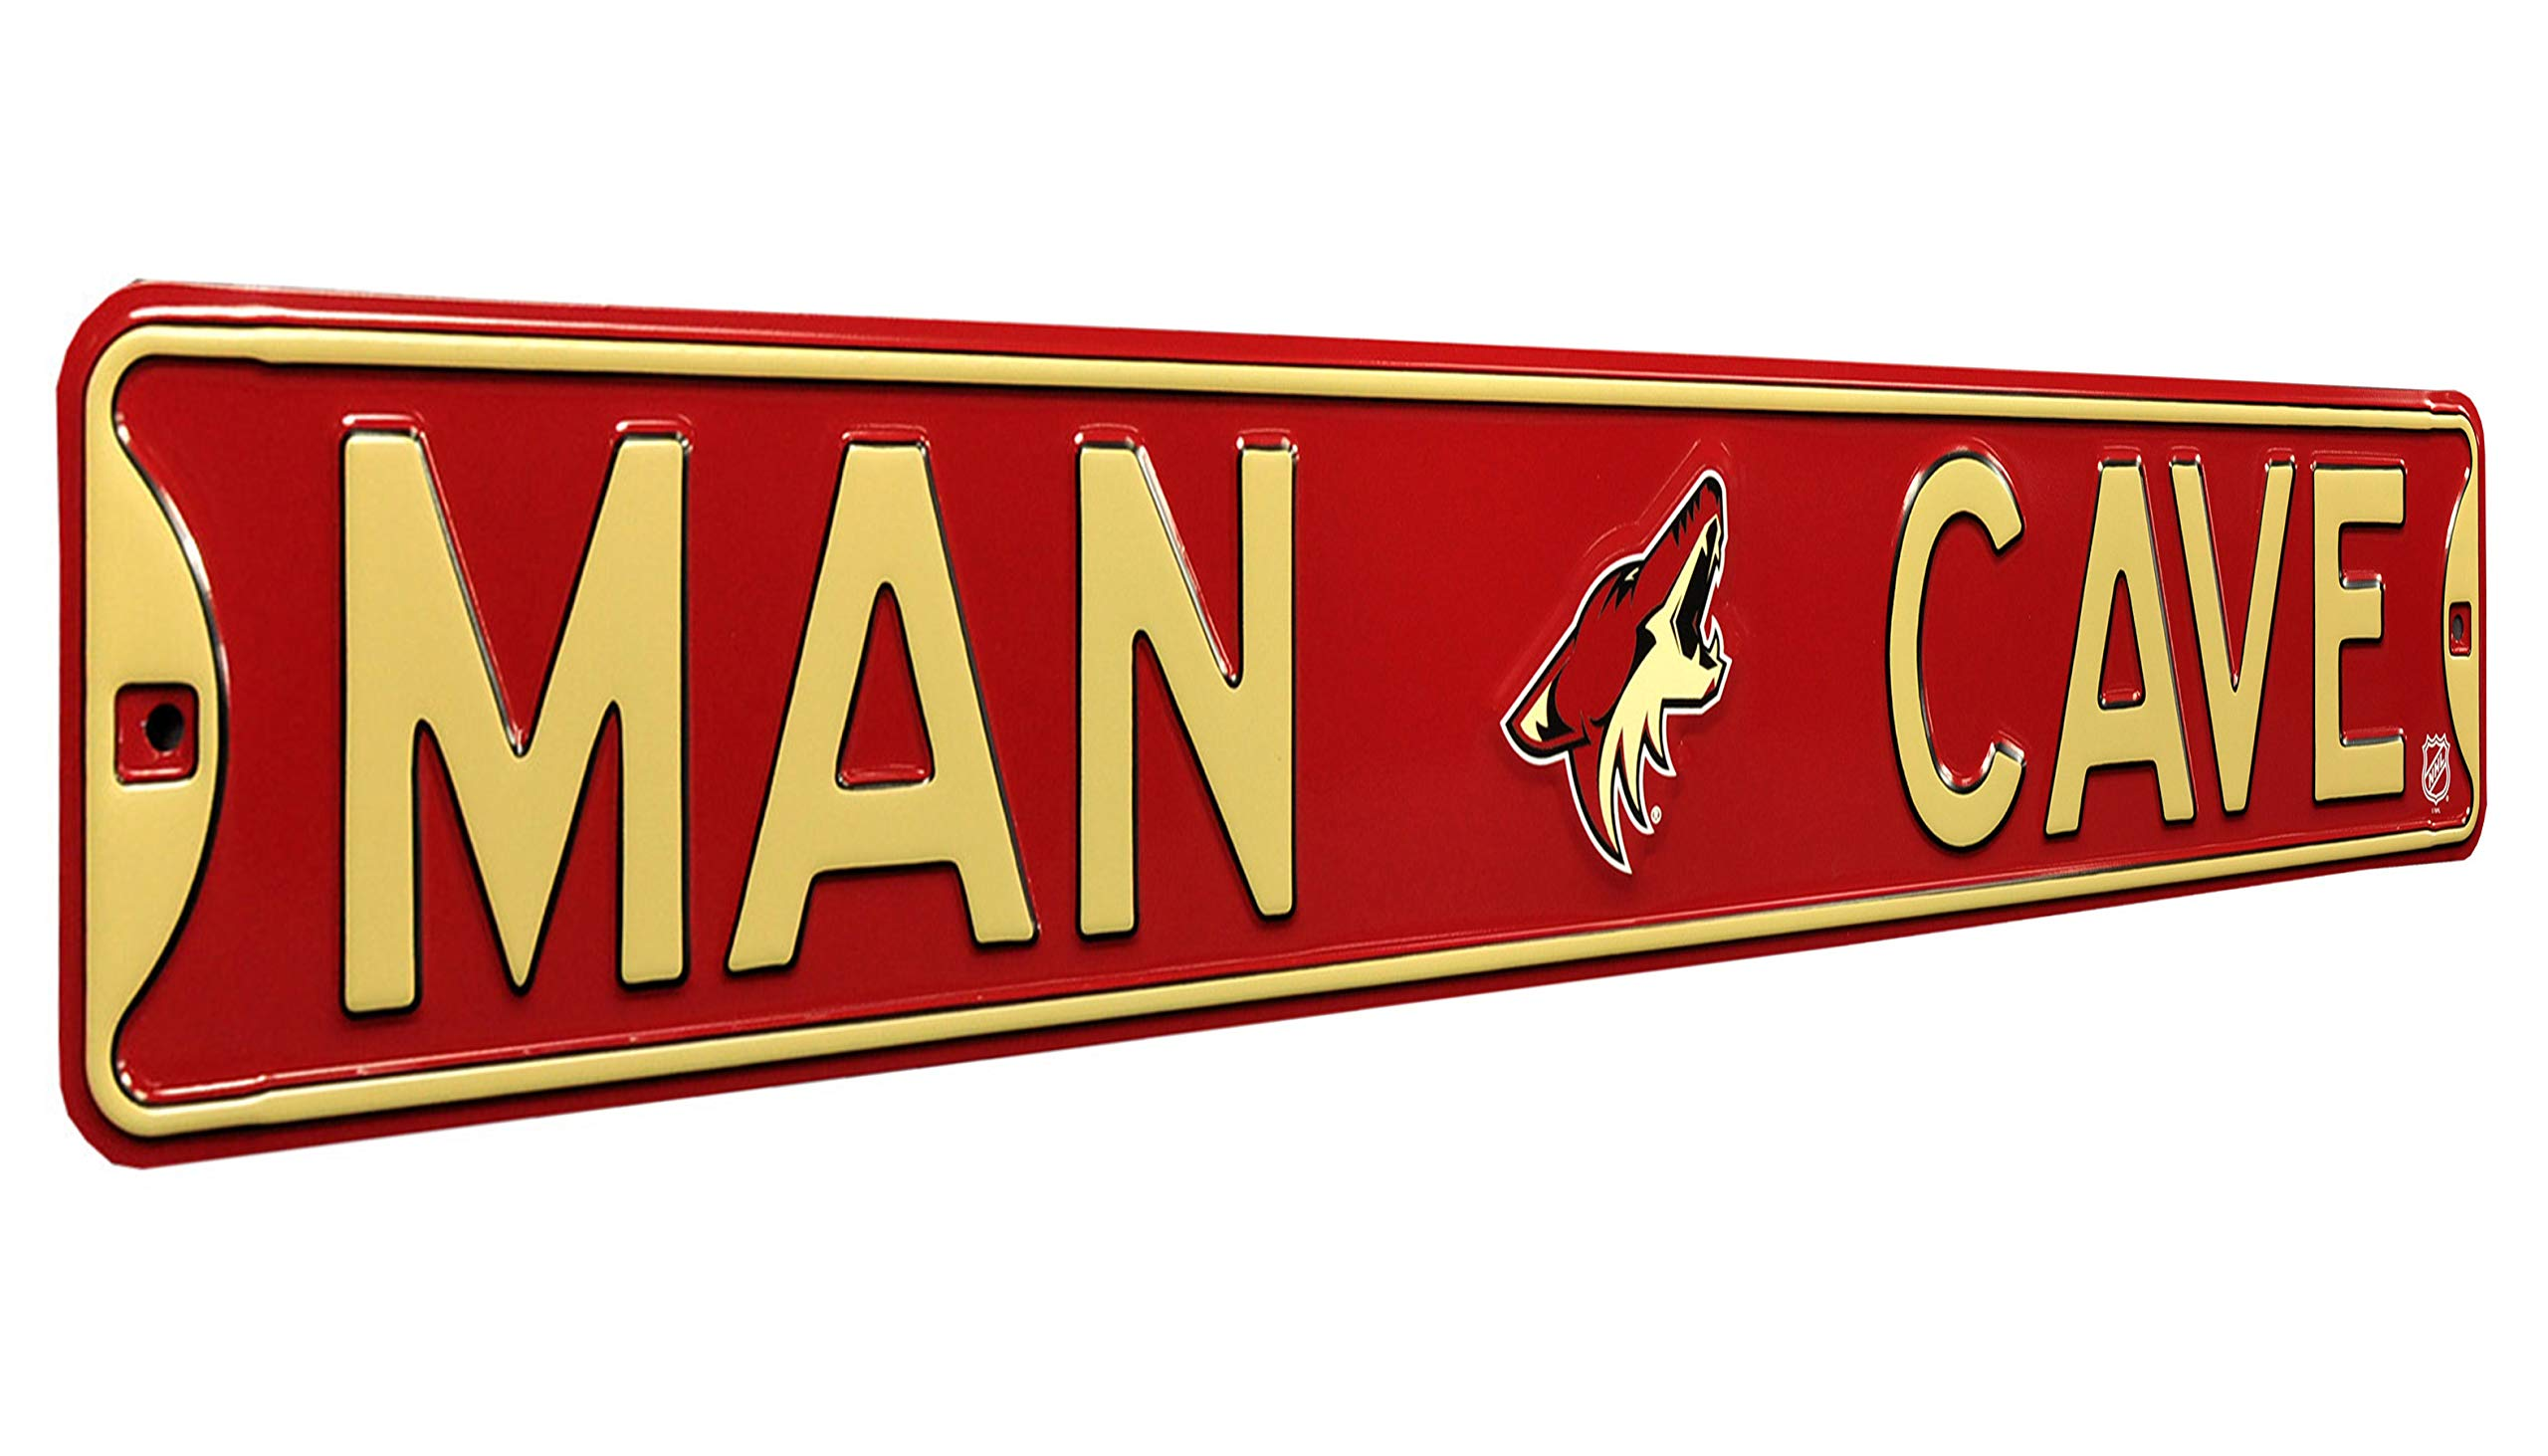 Authentic Street Signs NHL, Man CAVE, Officially Licensed, Real 3 Foot, Premium Grade Solid SteelEmbossed Street Sign- Prime Wall Decor for Home, Office, Garage for Him!!